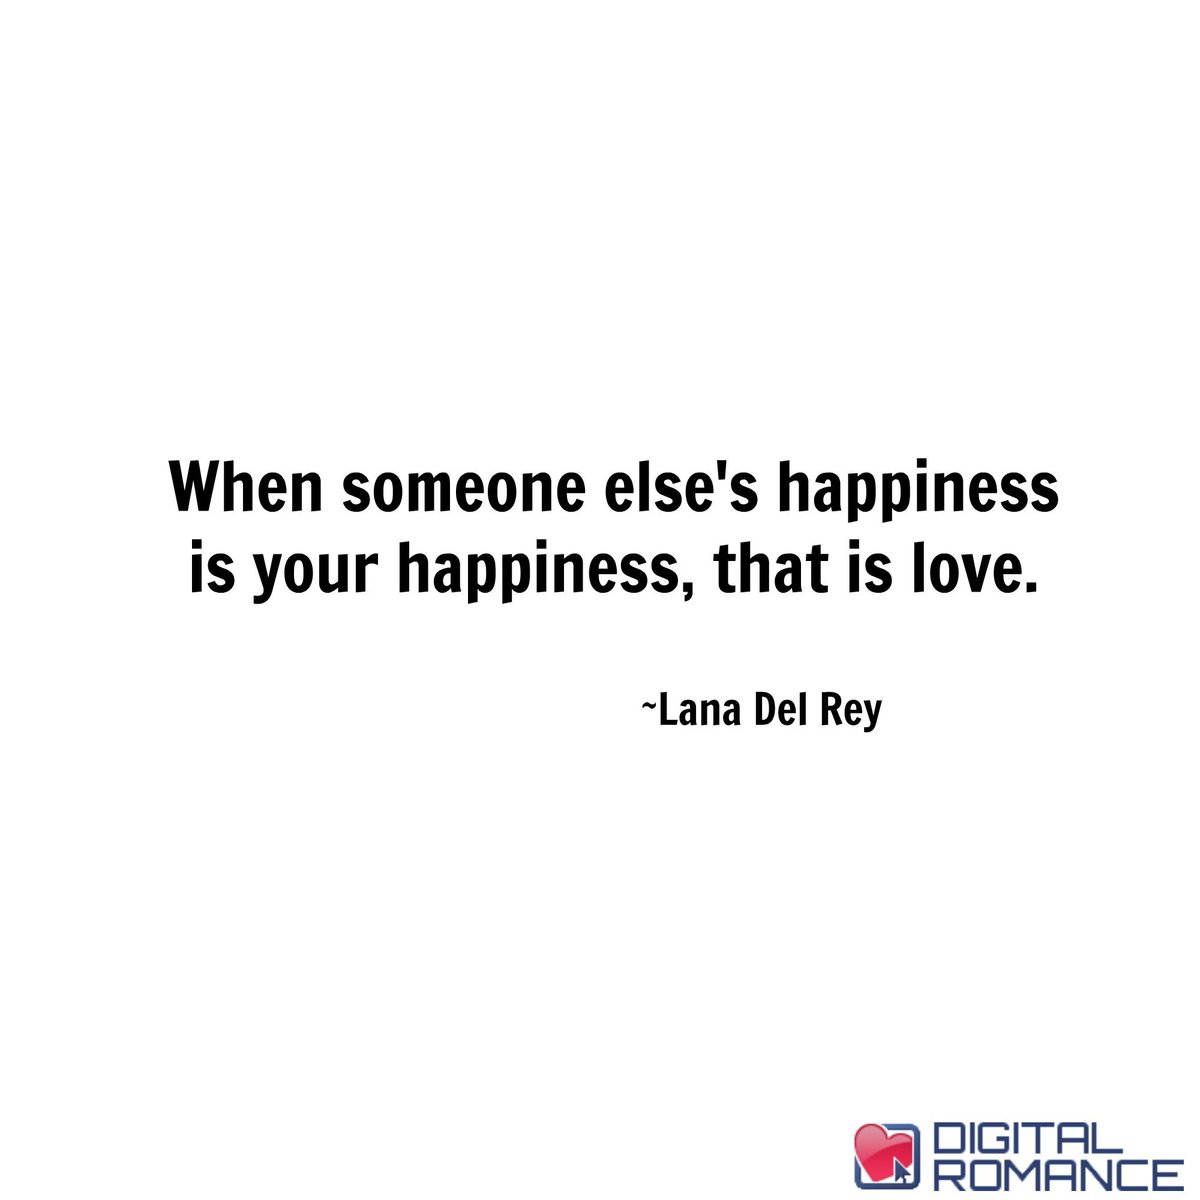 digital r ce inc on when someone else s happiness is